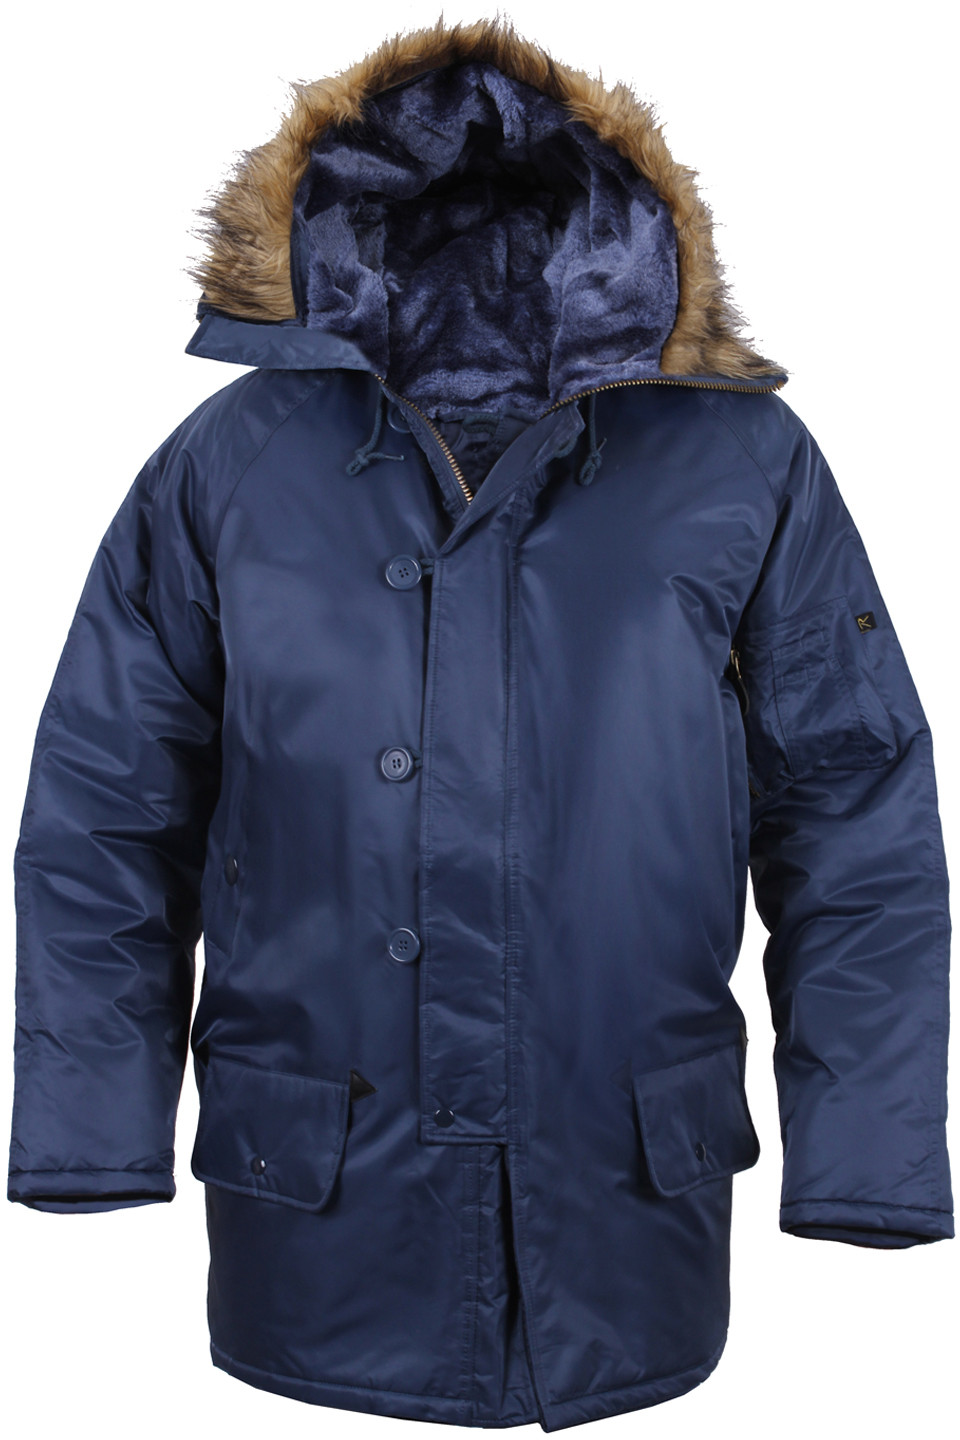 Parka Jacket Navy Blue